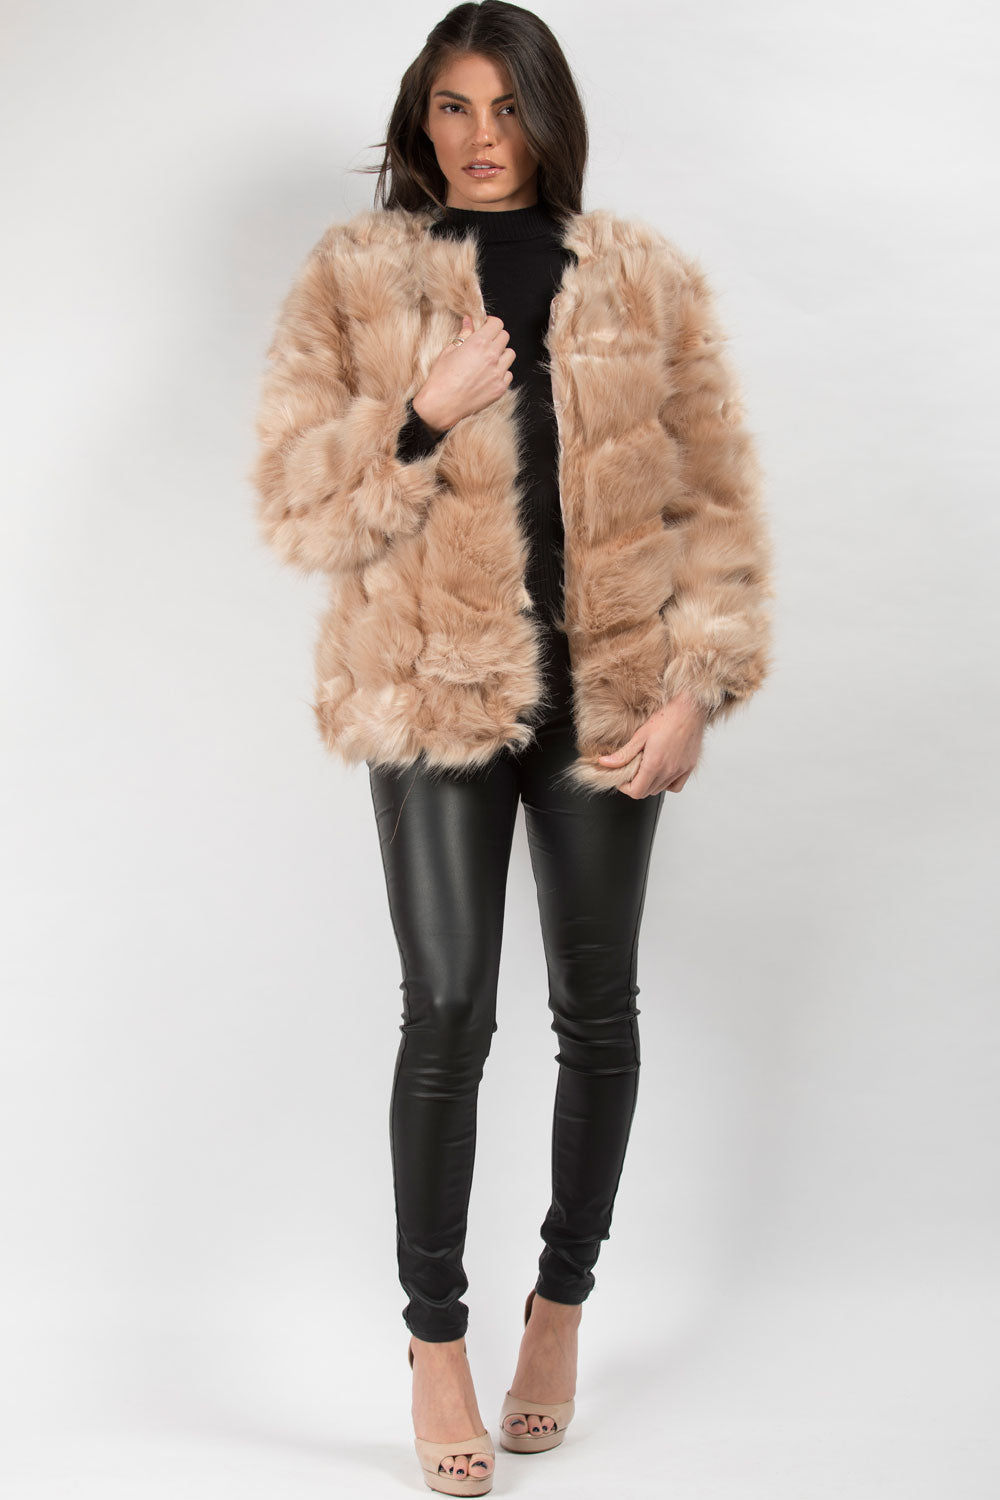 Nude Faux Fur Coat